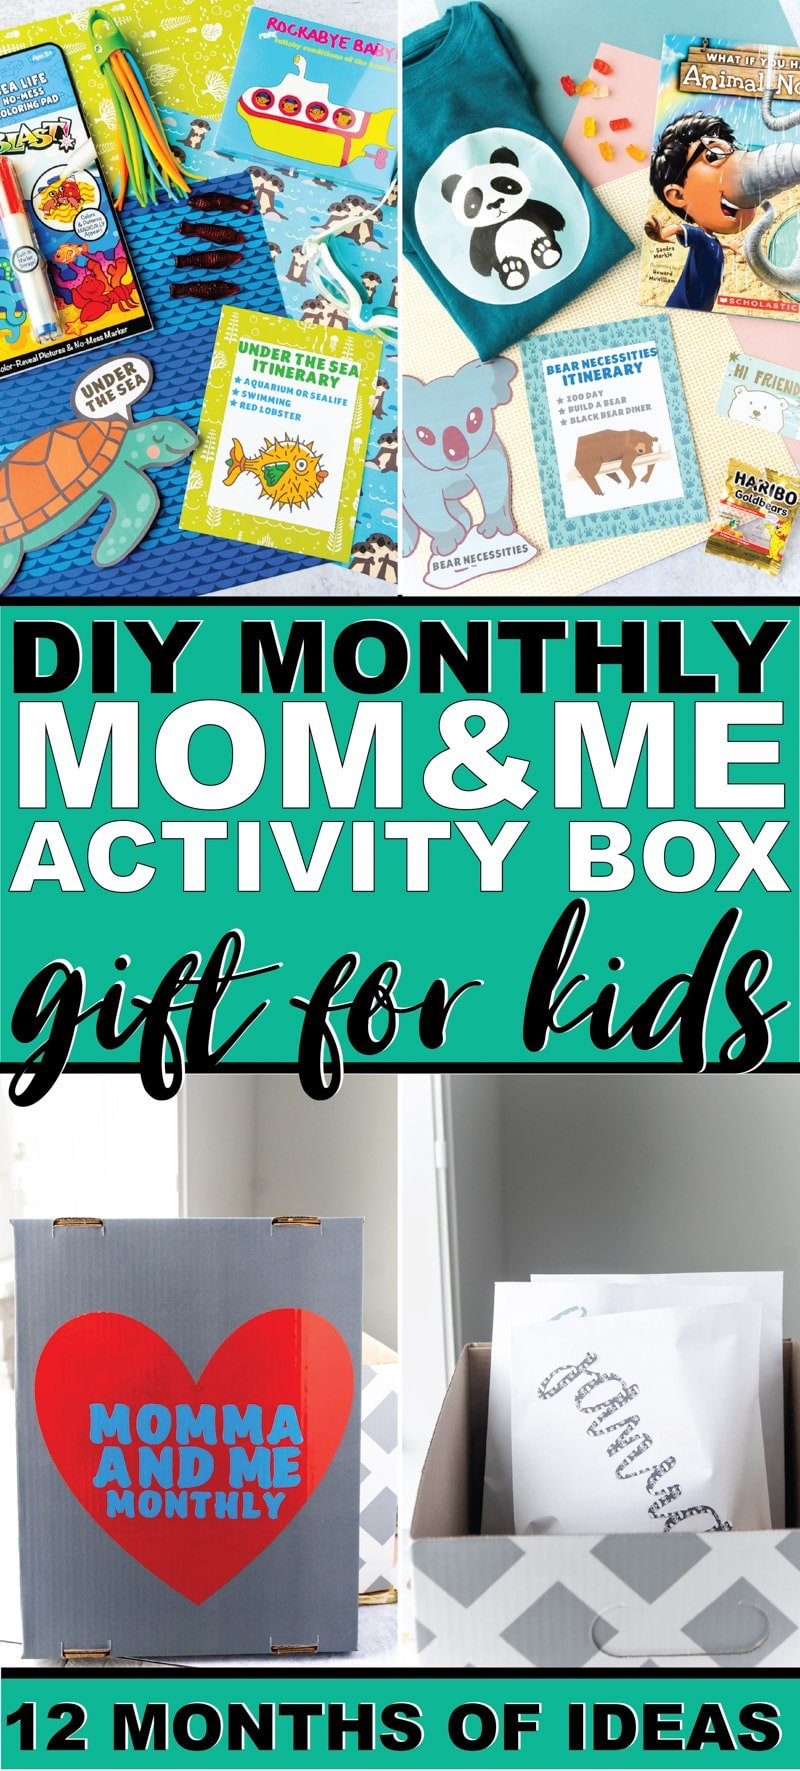 This monthly mom and me date night box is one of the best gifts for kids who have everything! It's something everyone - mom and kids will love!